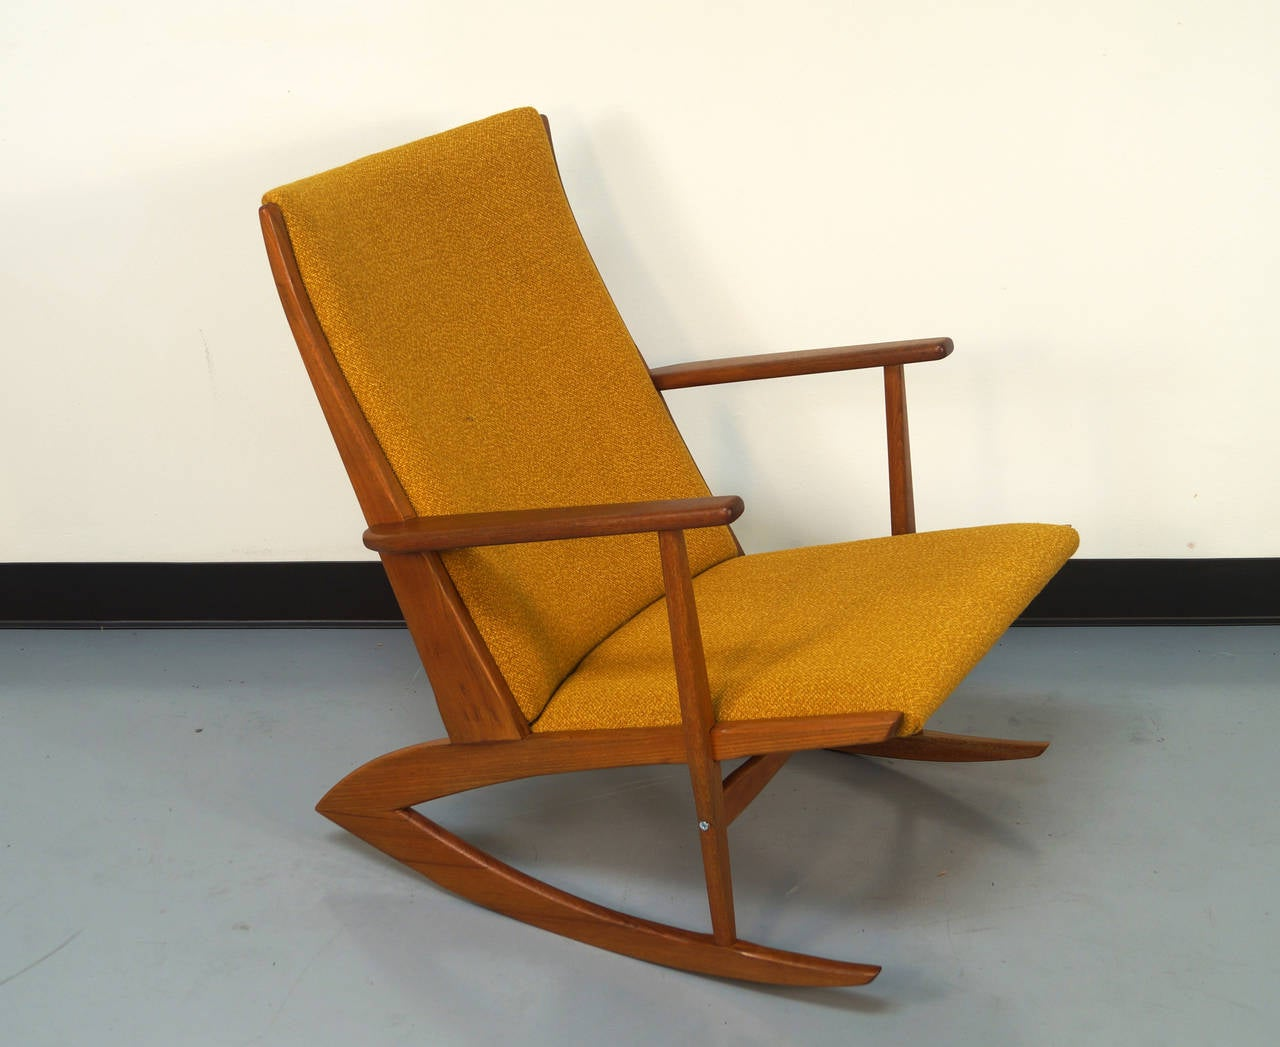 Danish_Teak_Boomerang_Rocking_Chair_by_Georg_Jensen_Danish_Modern_NoHo ...